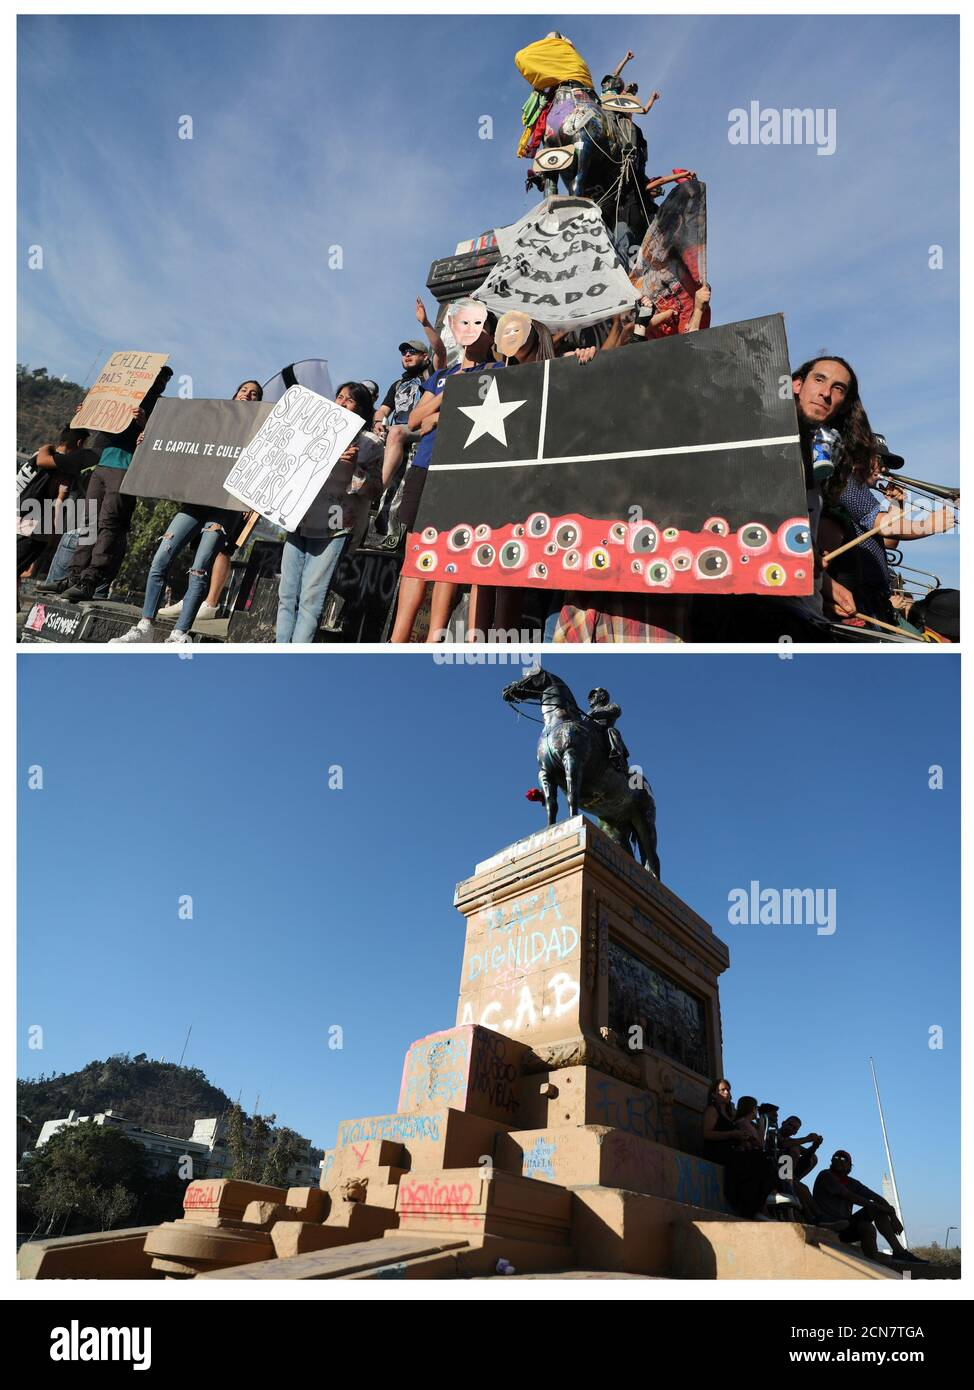 A combination photo shows demonstrators displaying signs during a protest against Chile's government at Plaza Italia, now known as Plaza de la Dignidad (Dignity square), in Santiago, Chile, in this December 10, 2019 file photo, and (bottom) a view of an almost empty Dignity Square following the outbreak of the coronavirus disease (COVID-19), March 24, 2020. Bottom picture taken March 24, 2020. REUTERS/Ivan Alvarado Stock Photo